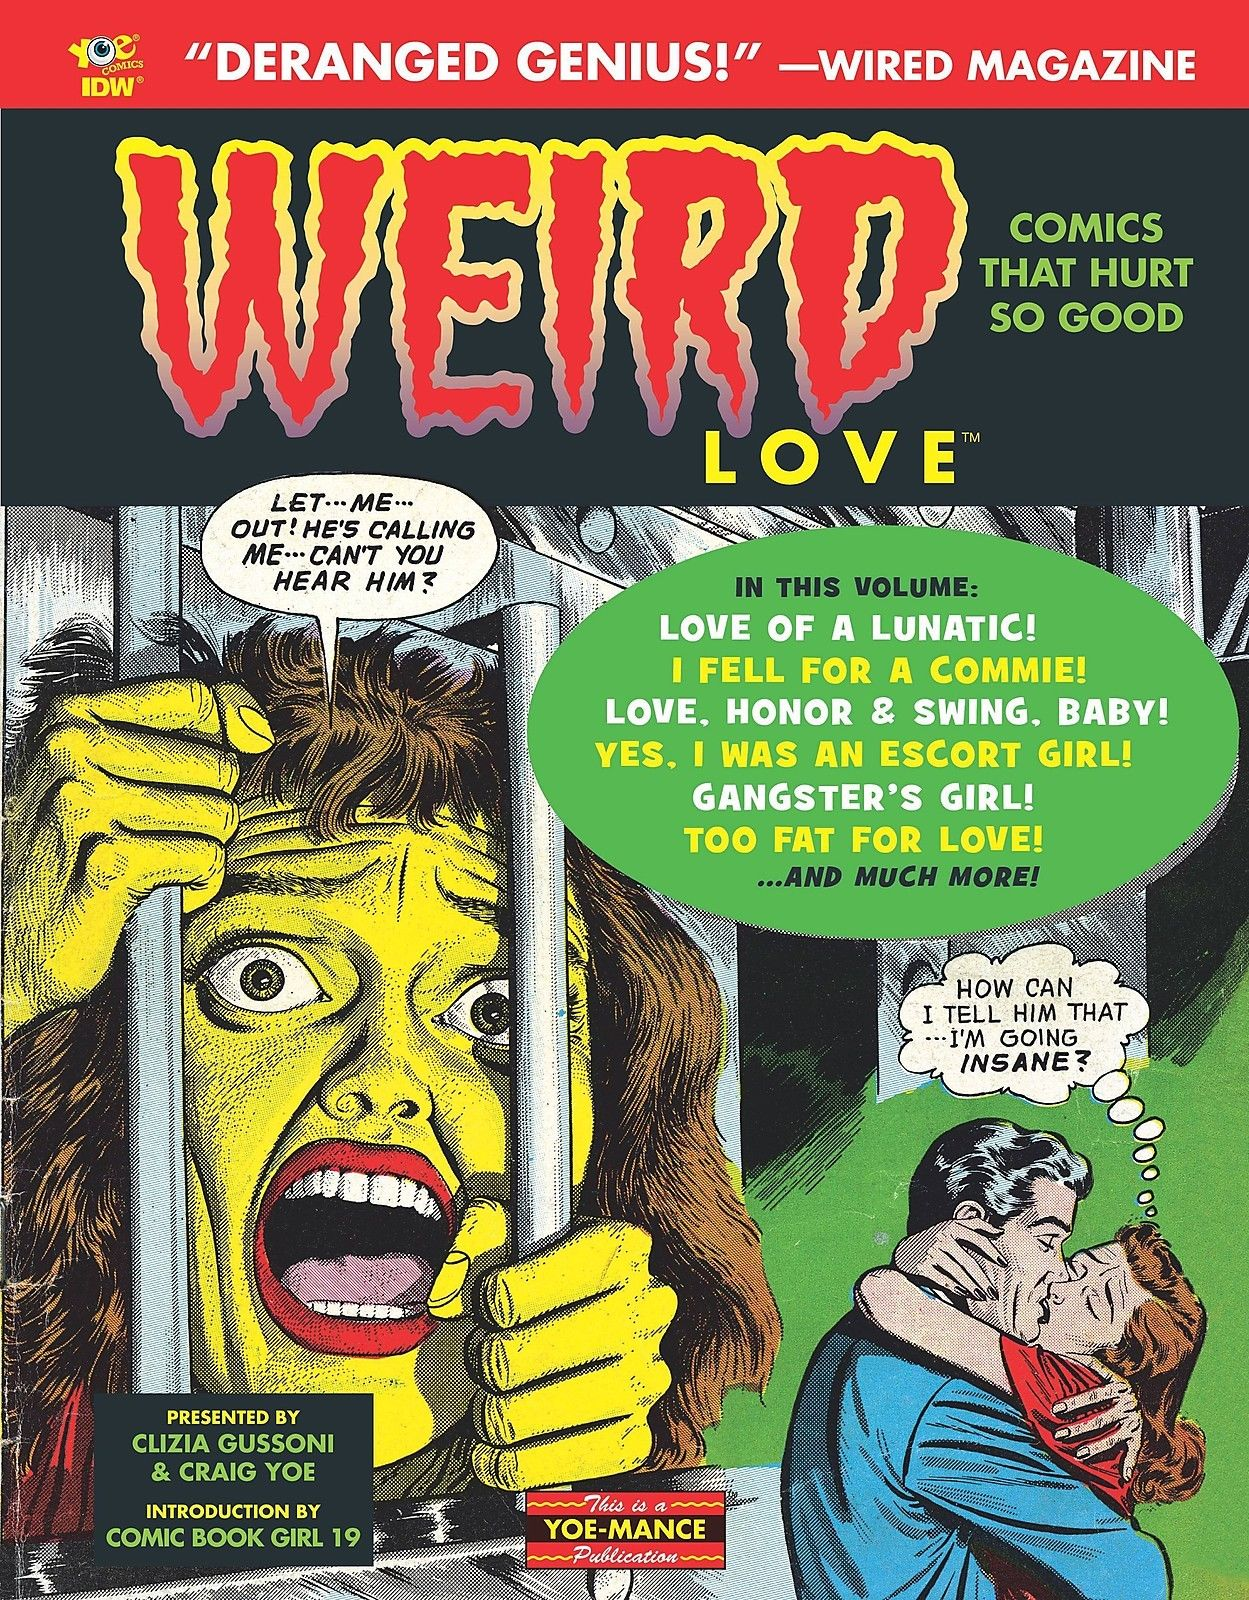 WEIRD LOVE, You Know You Want It!!!